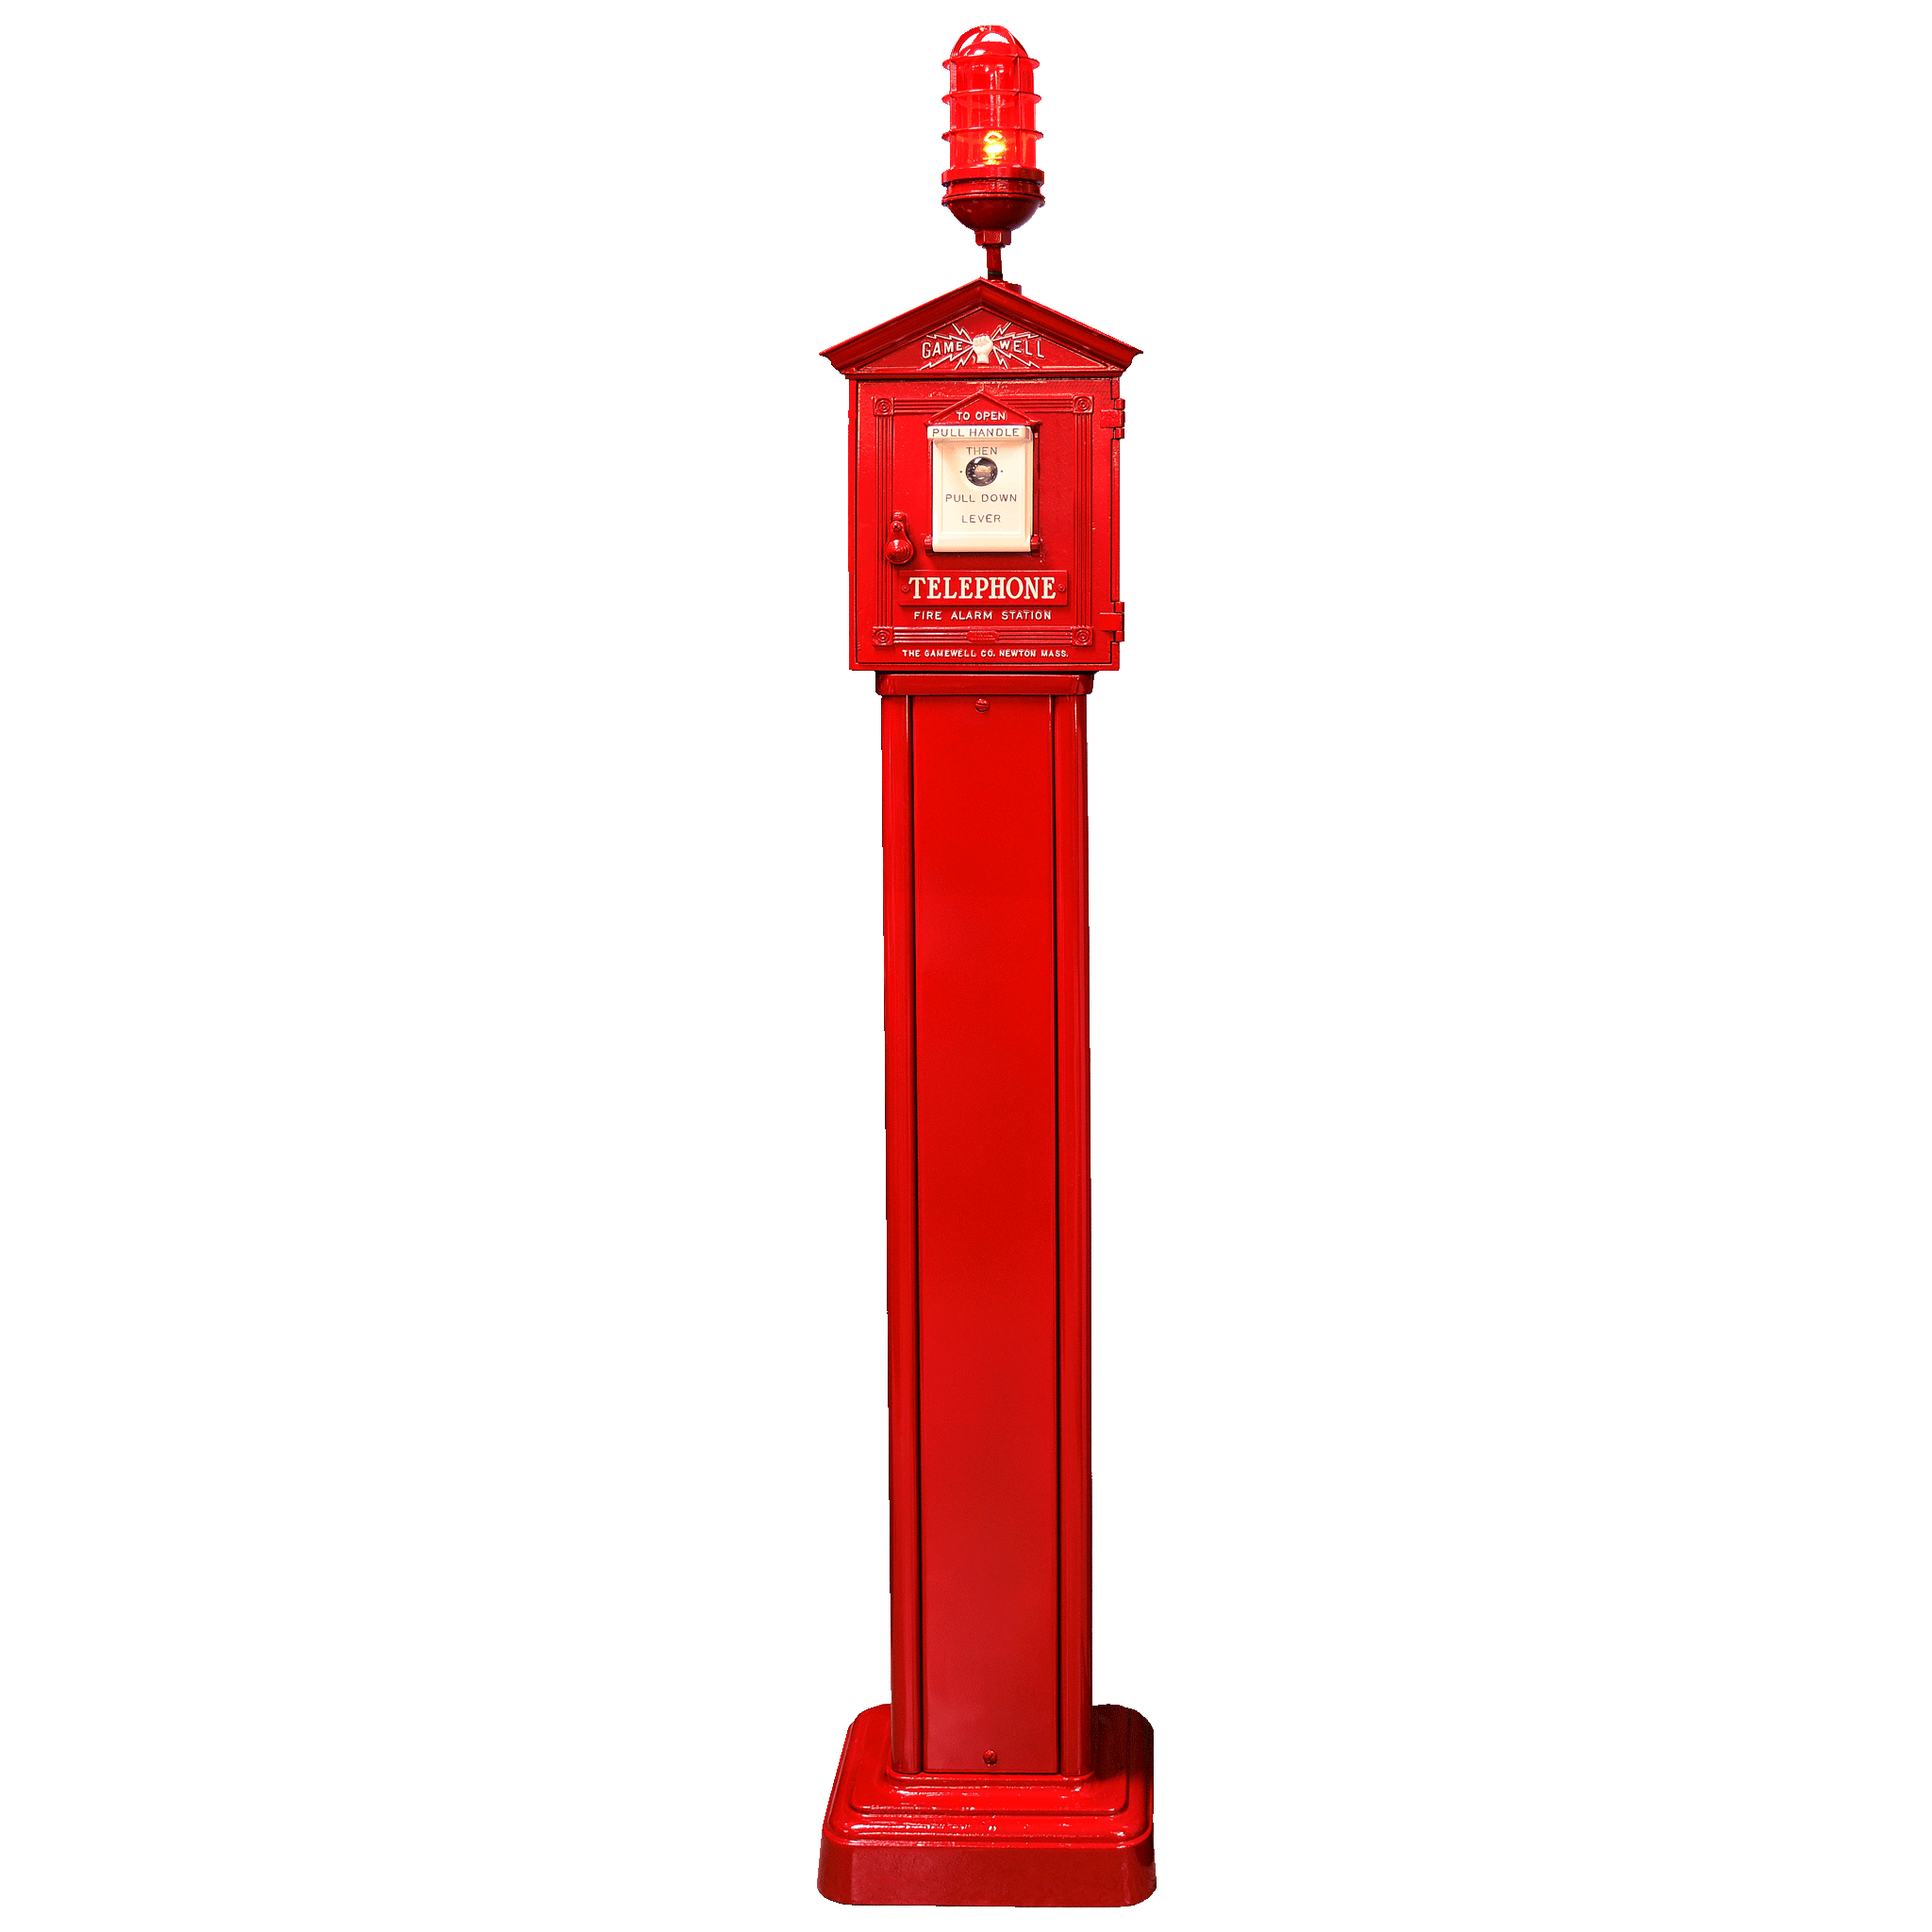 Gamewell Fire Alarm Call Box on Pedestal from ...